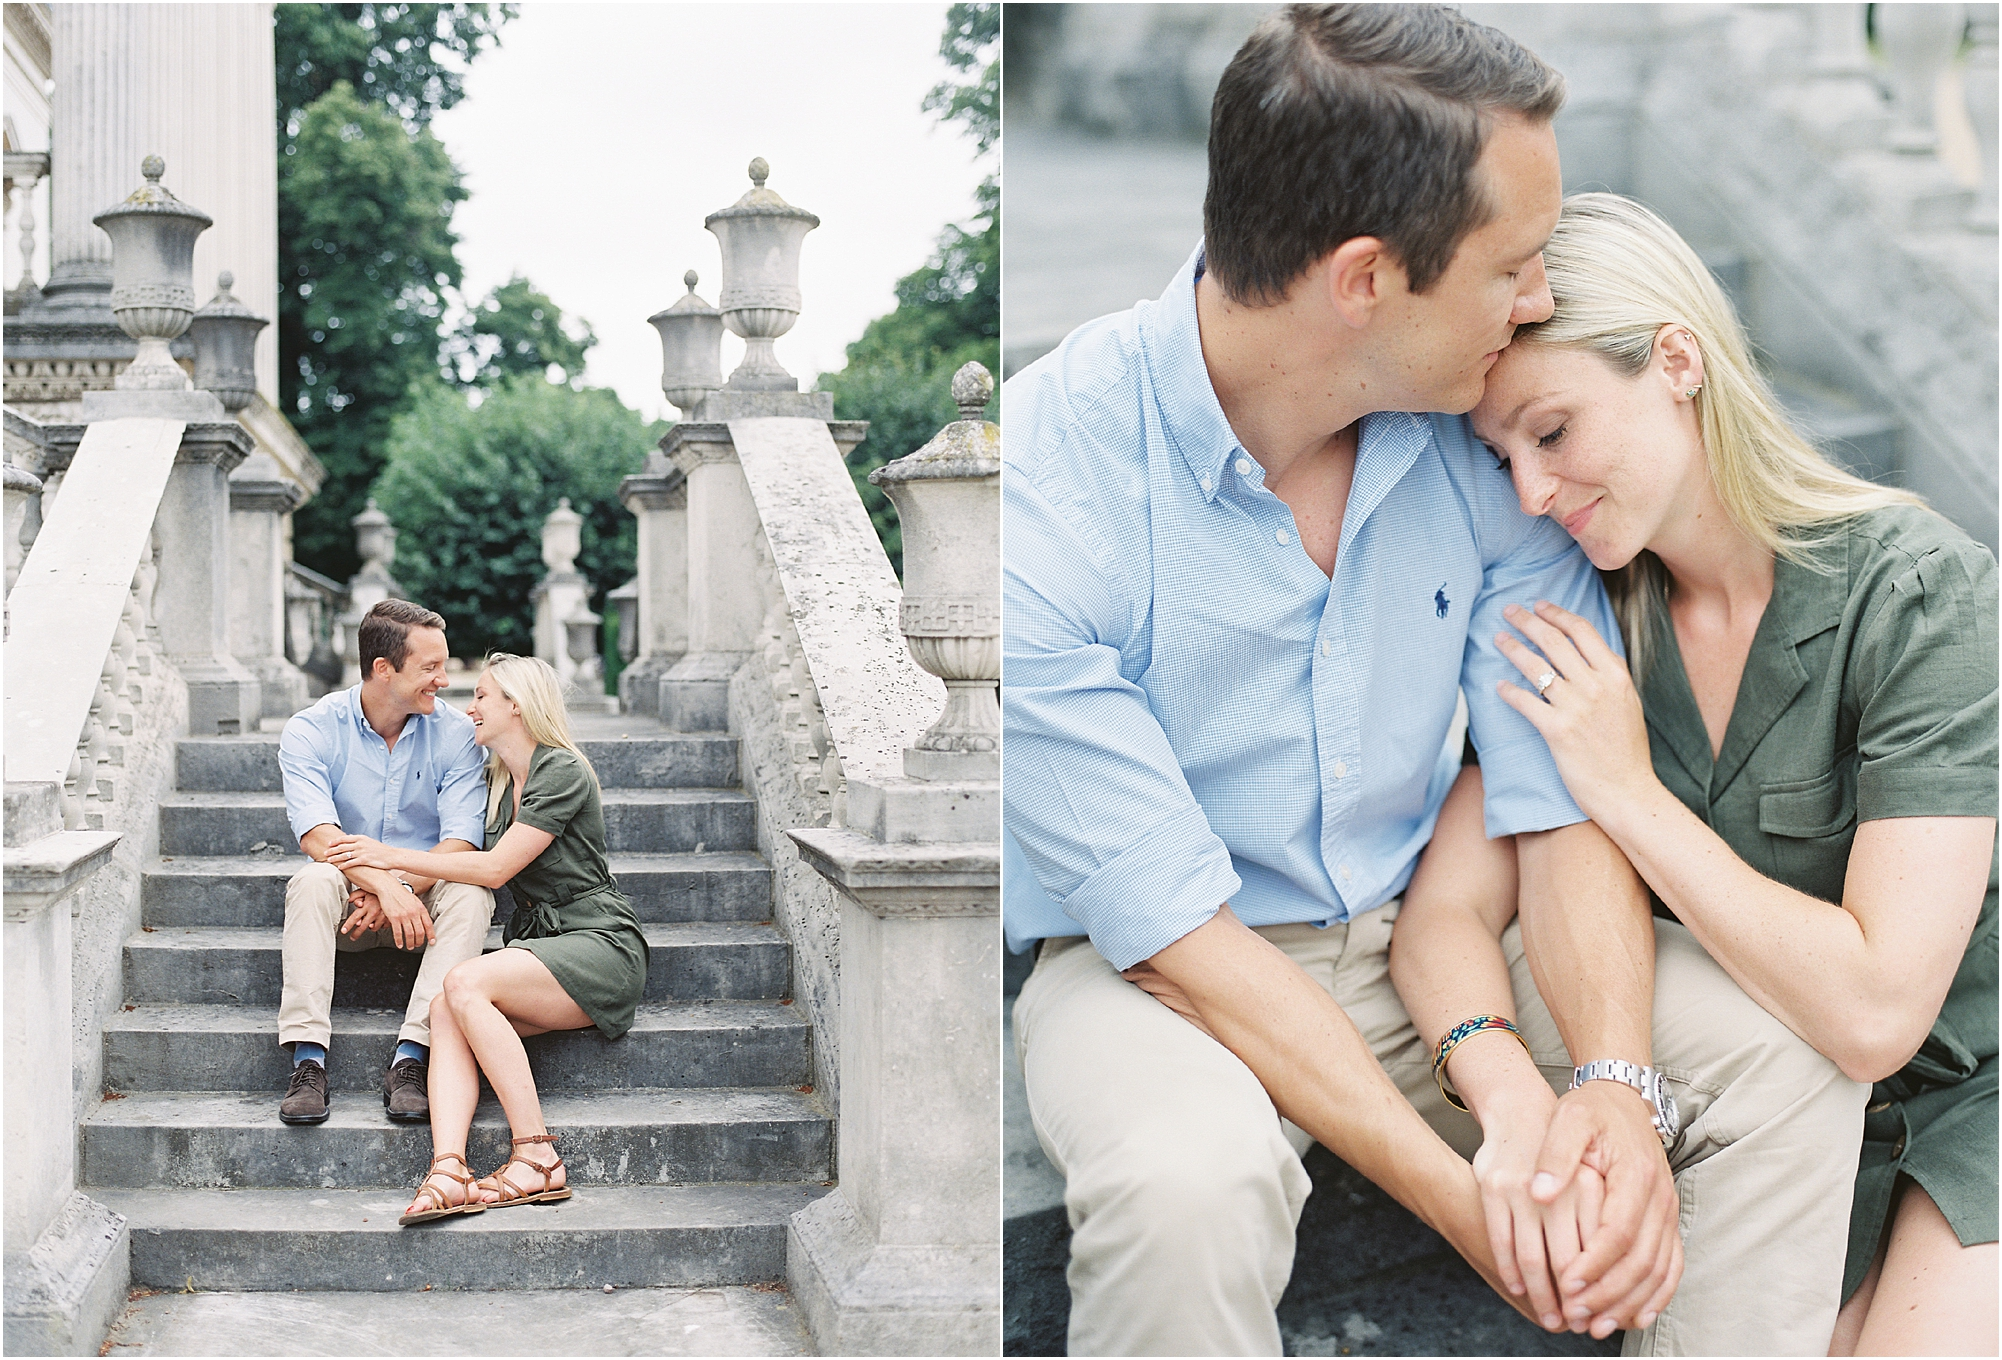 tips for finding your wedding photographer